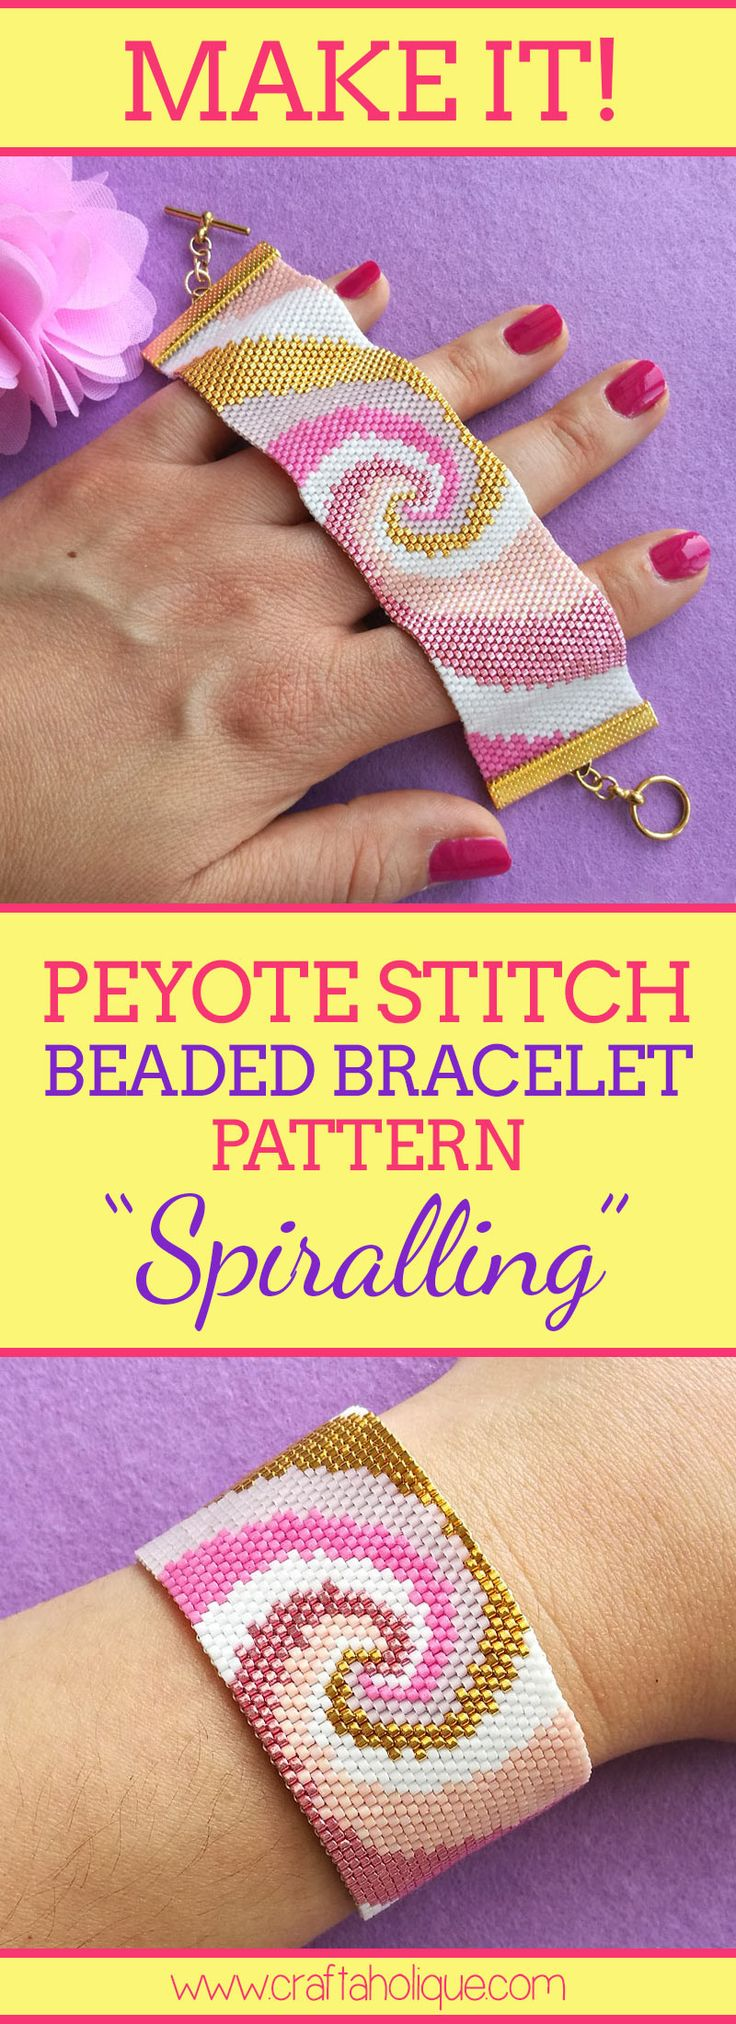 With its gorgeous colours of pink, gold and white and contemporary spiral design, there's something rather mesmerizing about this peyote bracelet pattern!